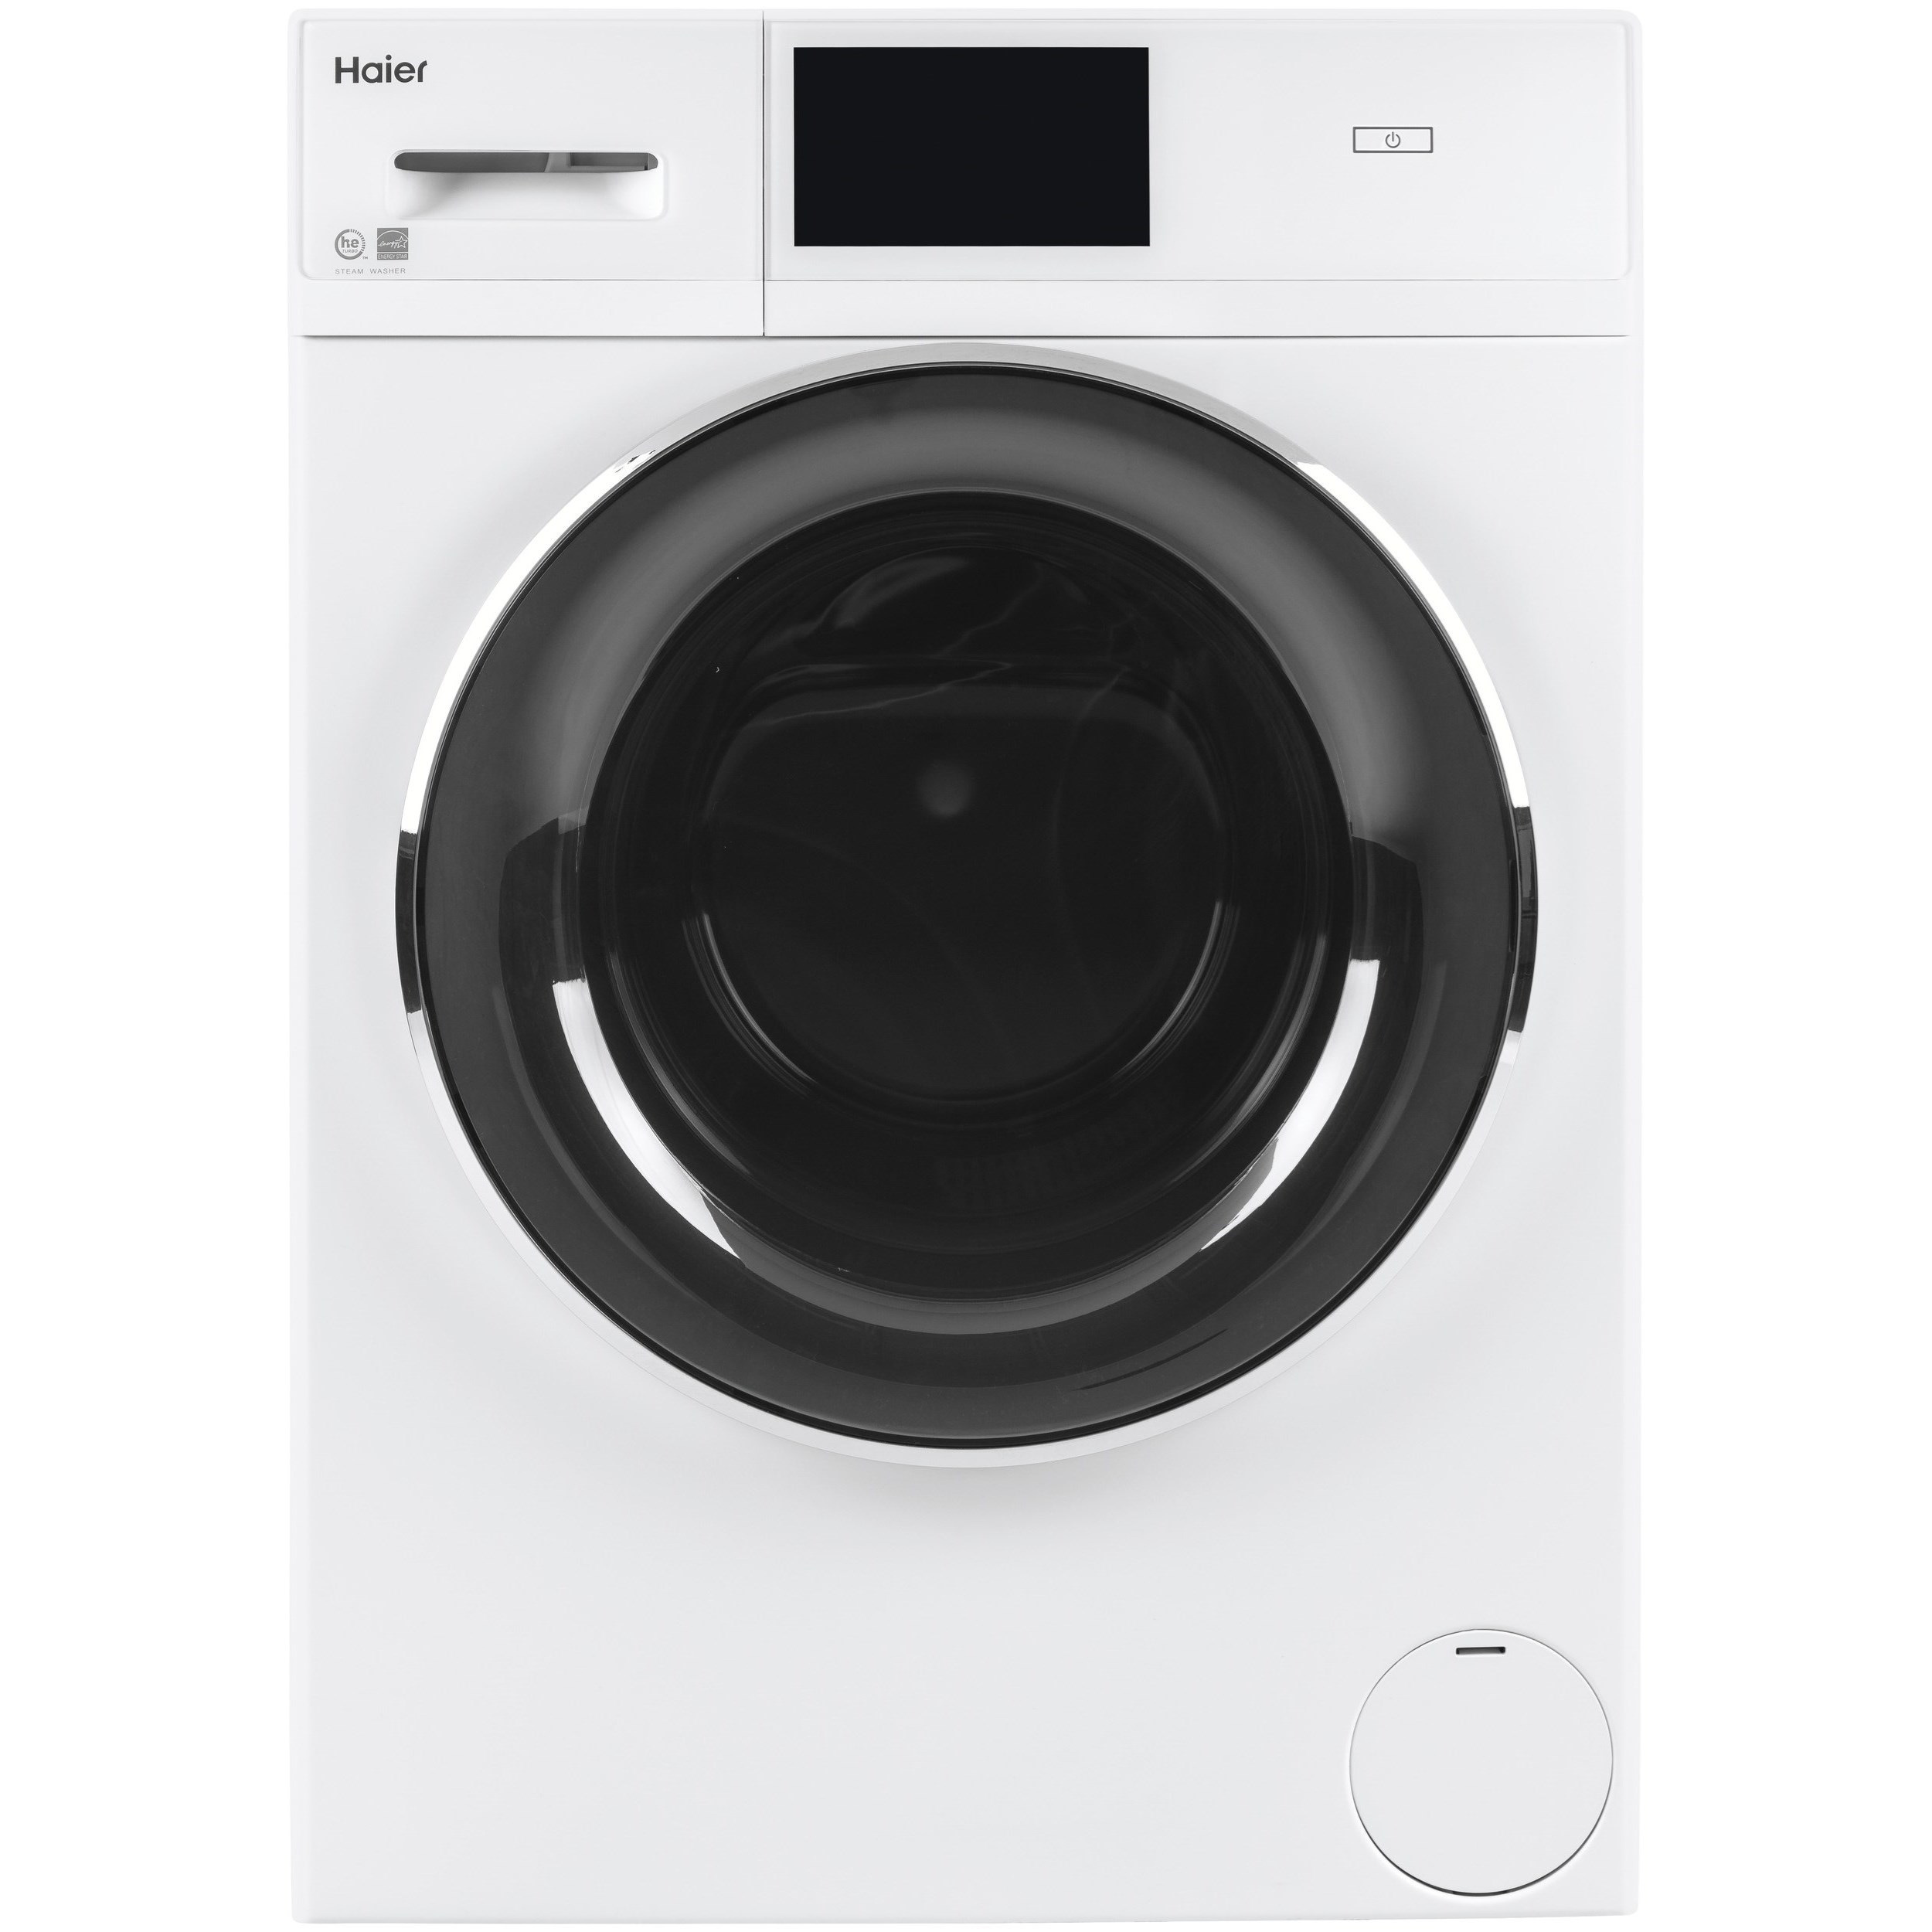 Front Load Washers - GE 2.4 Cu. Ft. Smart Frontload Washer by GE Appliances at Westrich Furniture & Appliances